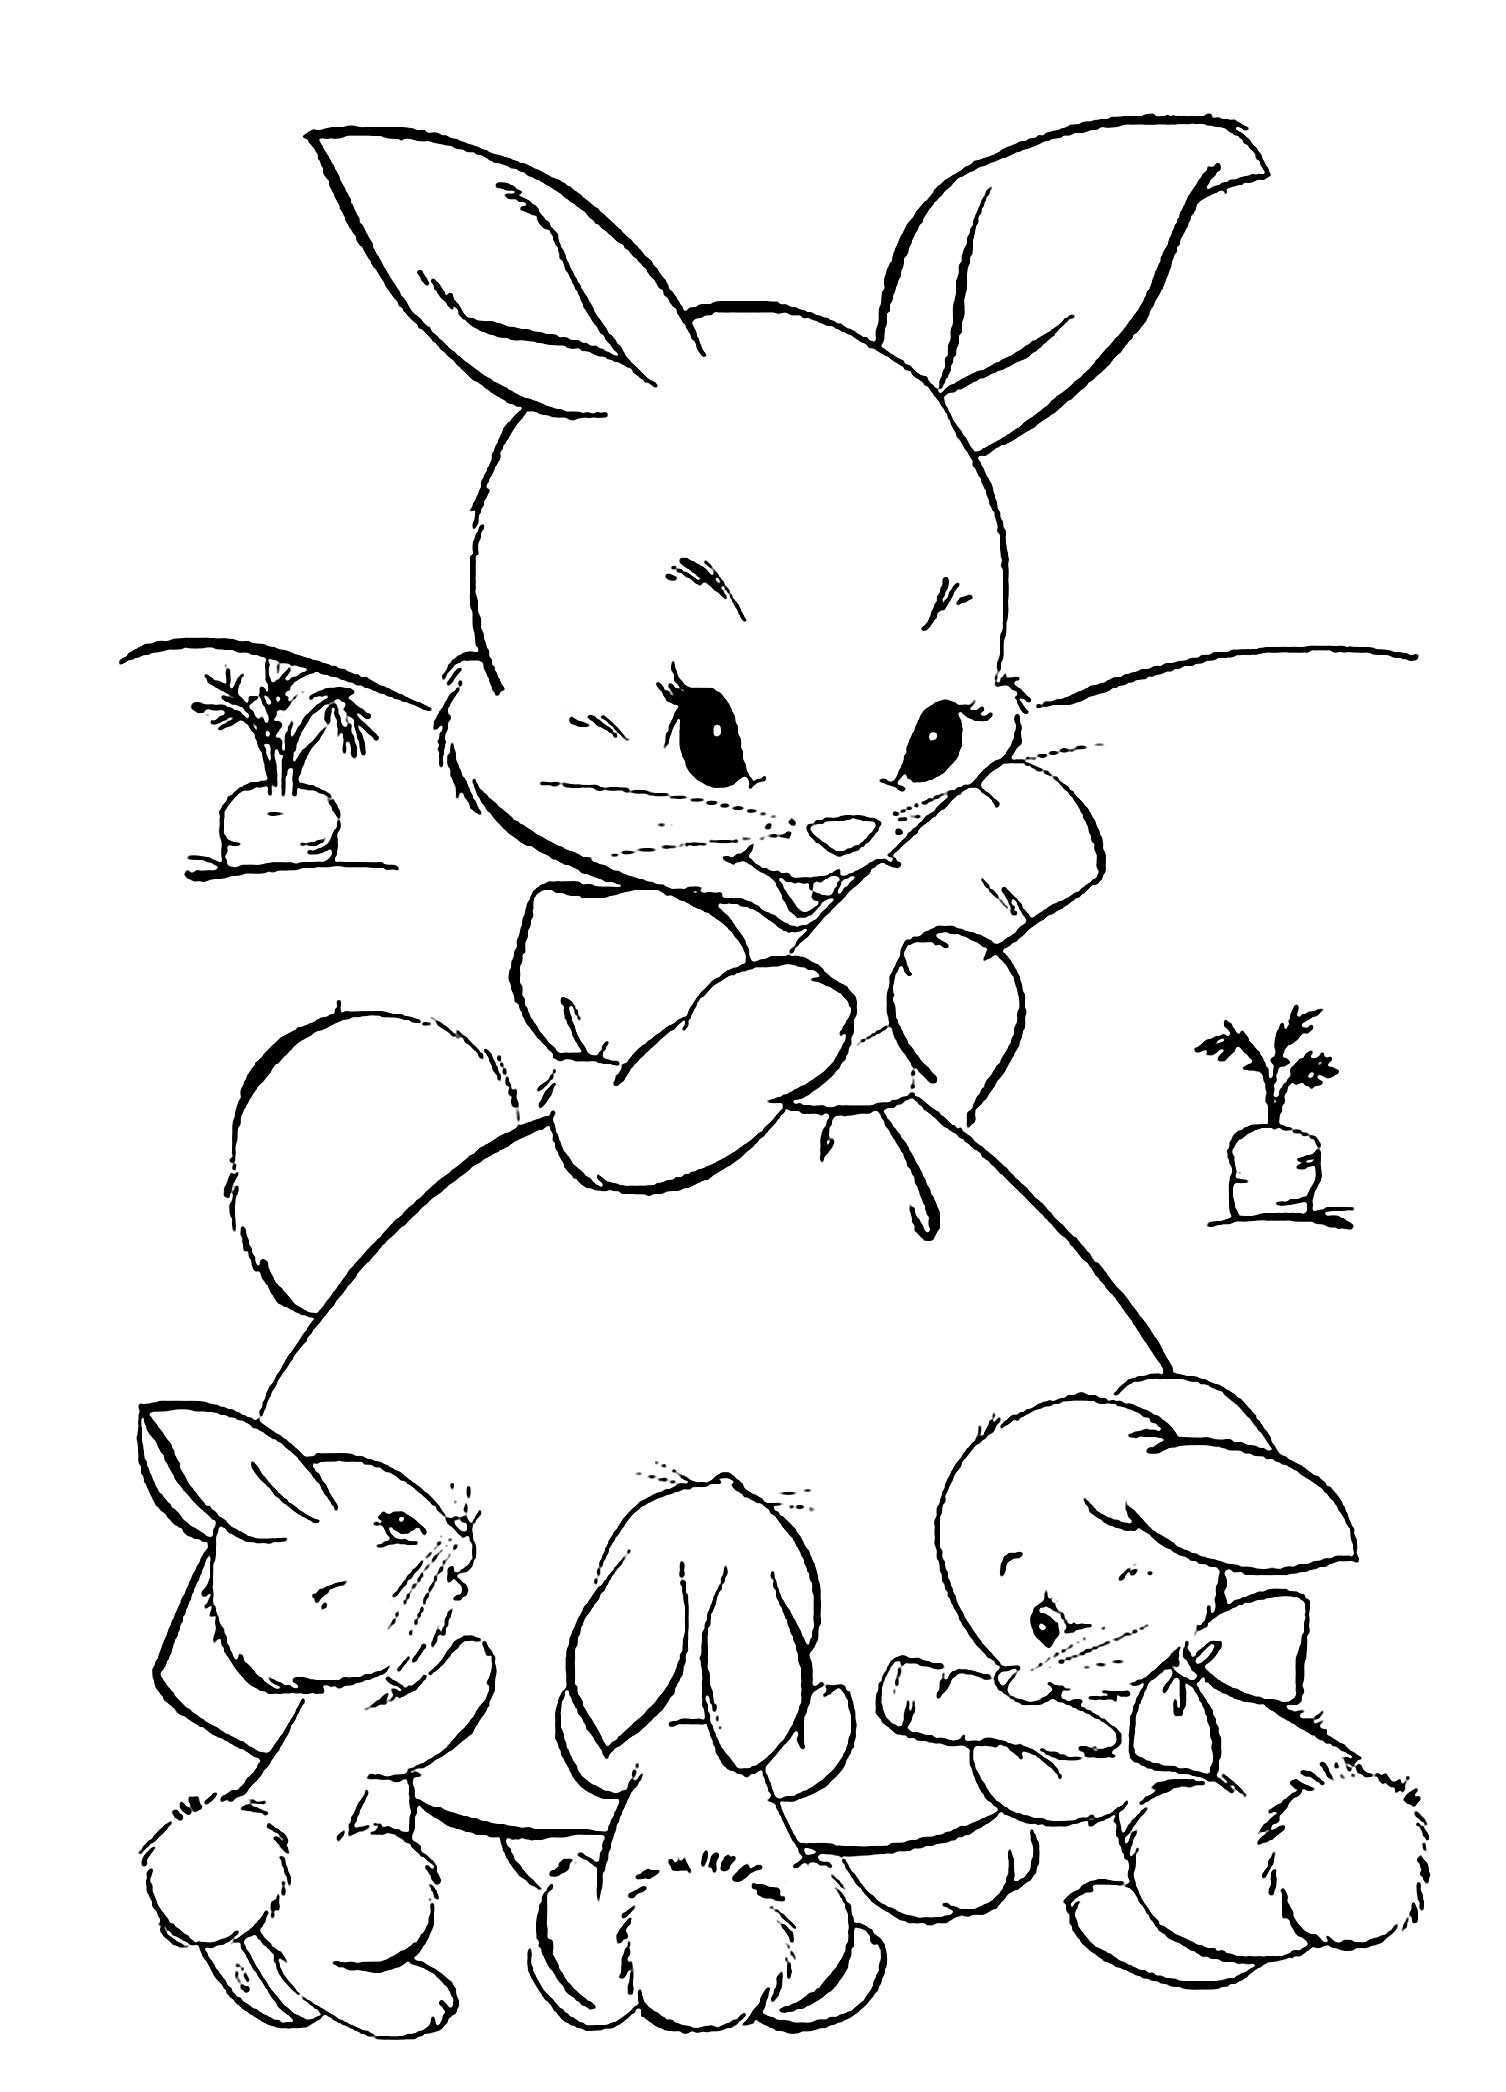 rabbit coloring pictures rabbit to color for children rabbit kids coloring pages pictures rabbit coloring